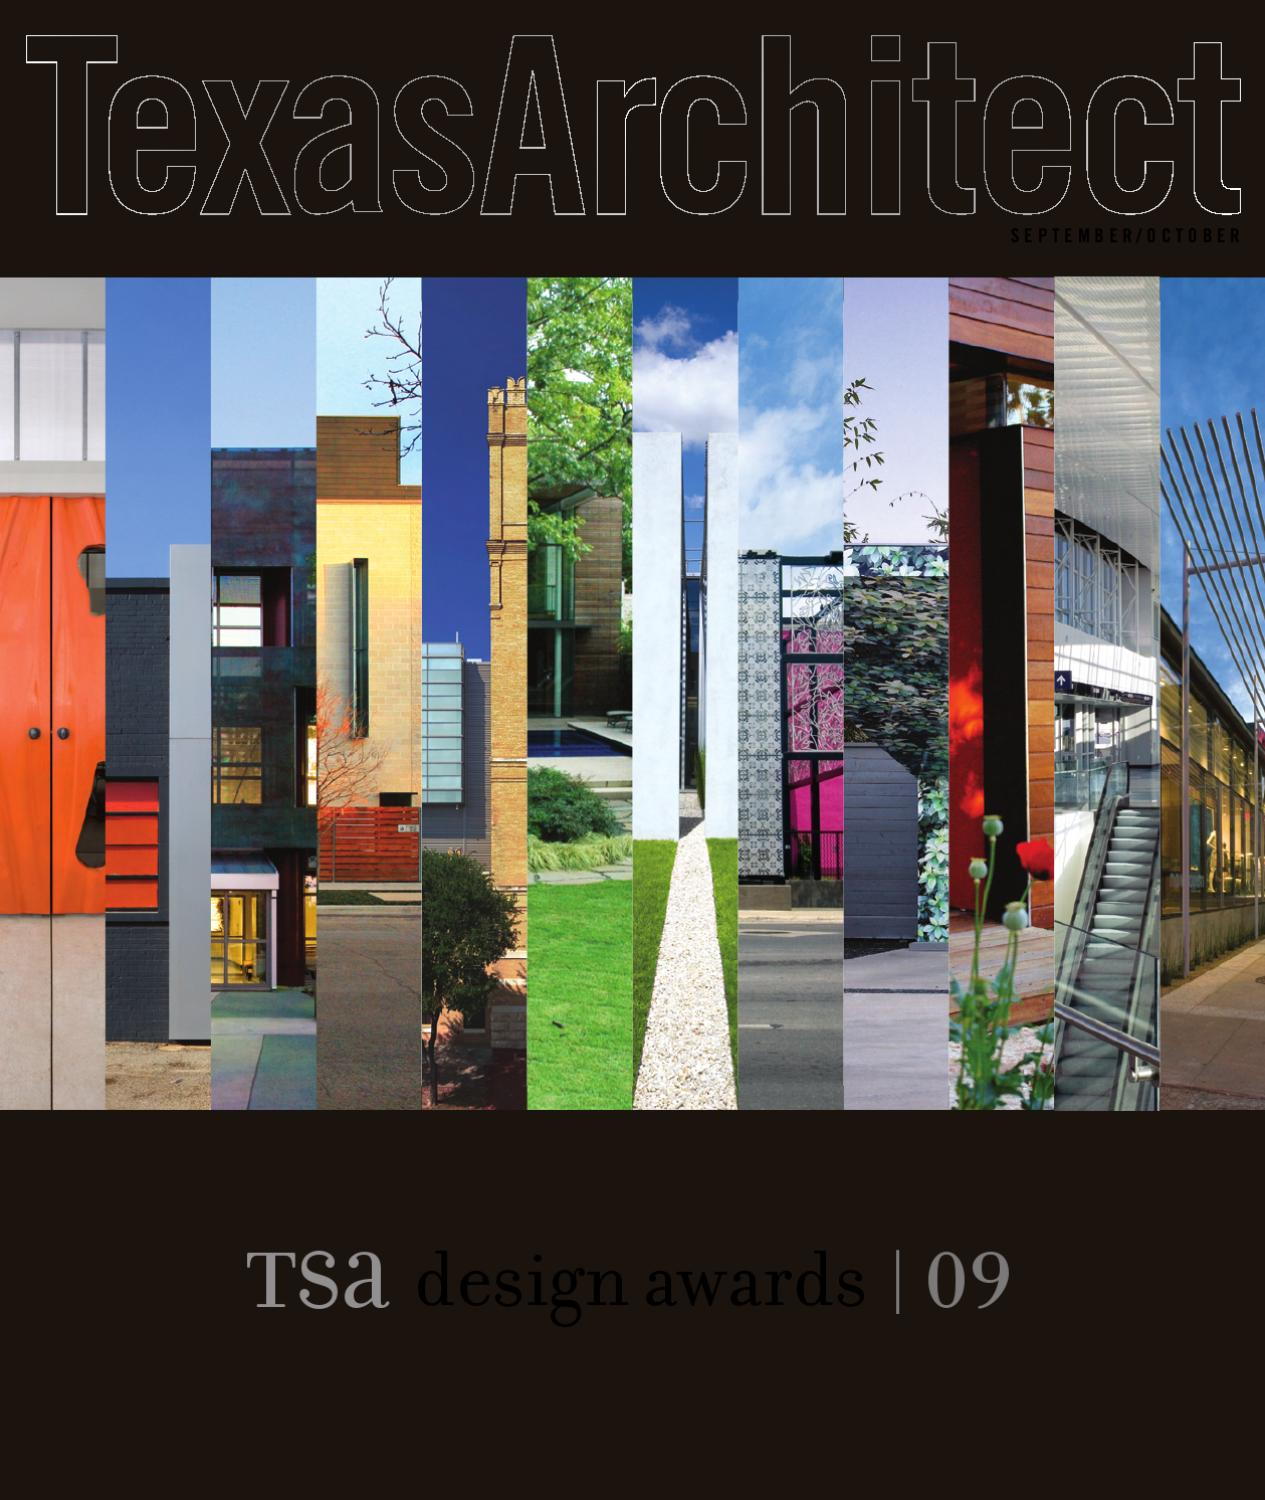 Texas Architect Sept Oct 2009 Design Awards By Society Of Banner Ez Screen Wiring Diagram Architects Issuu